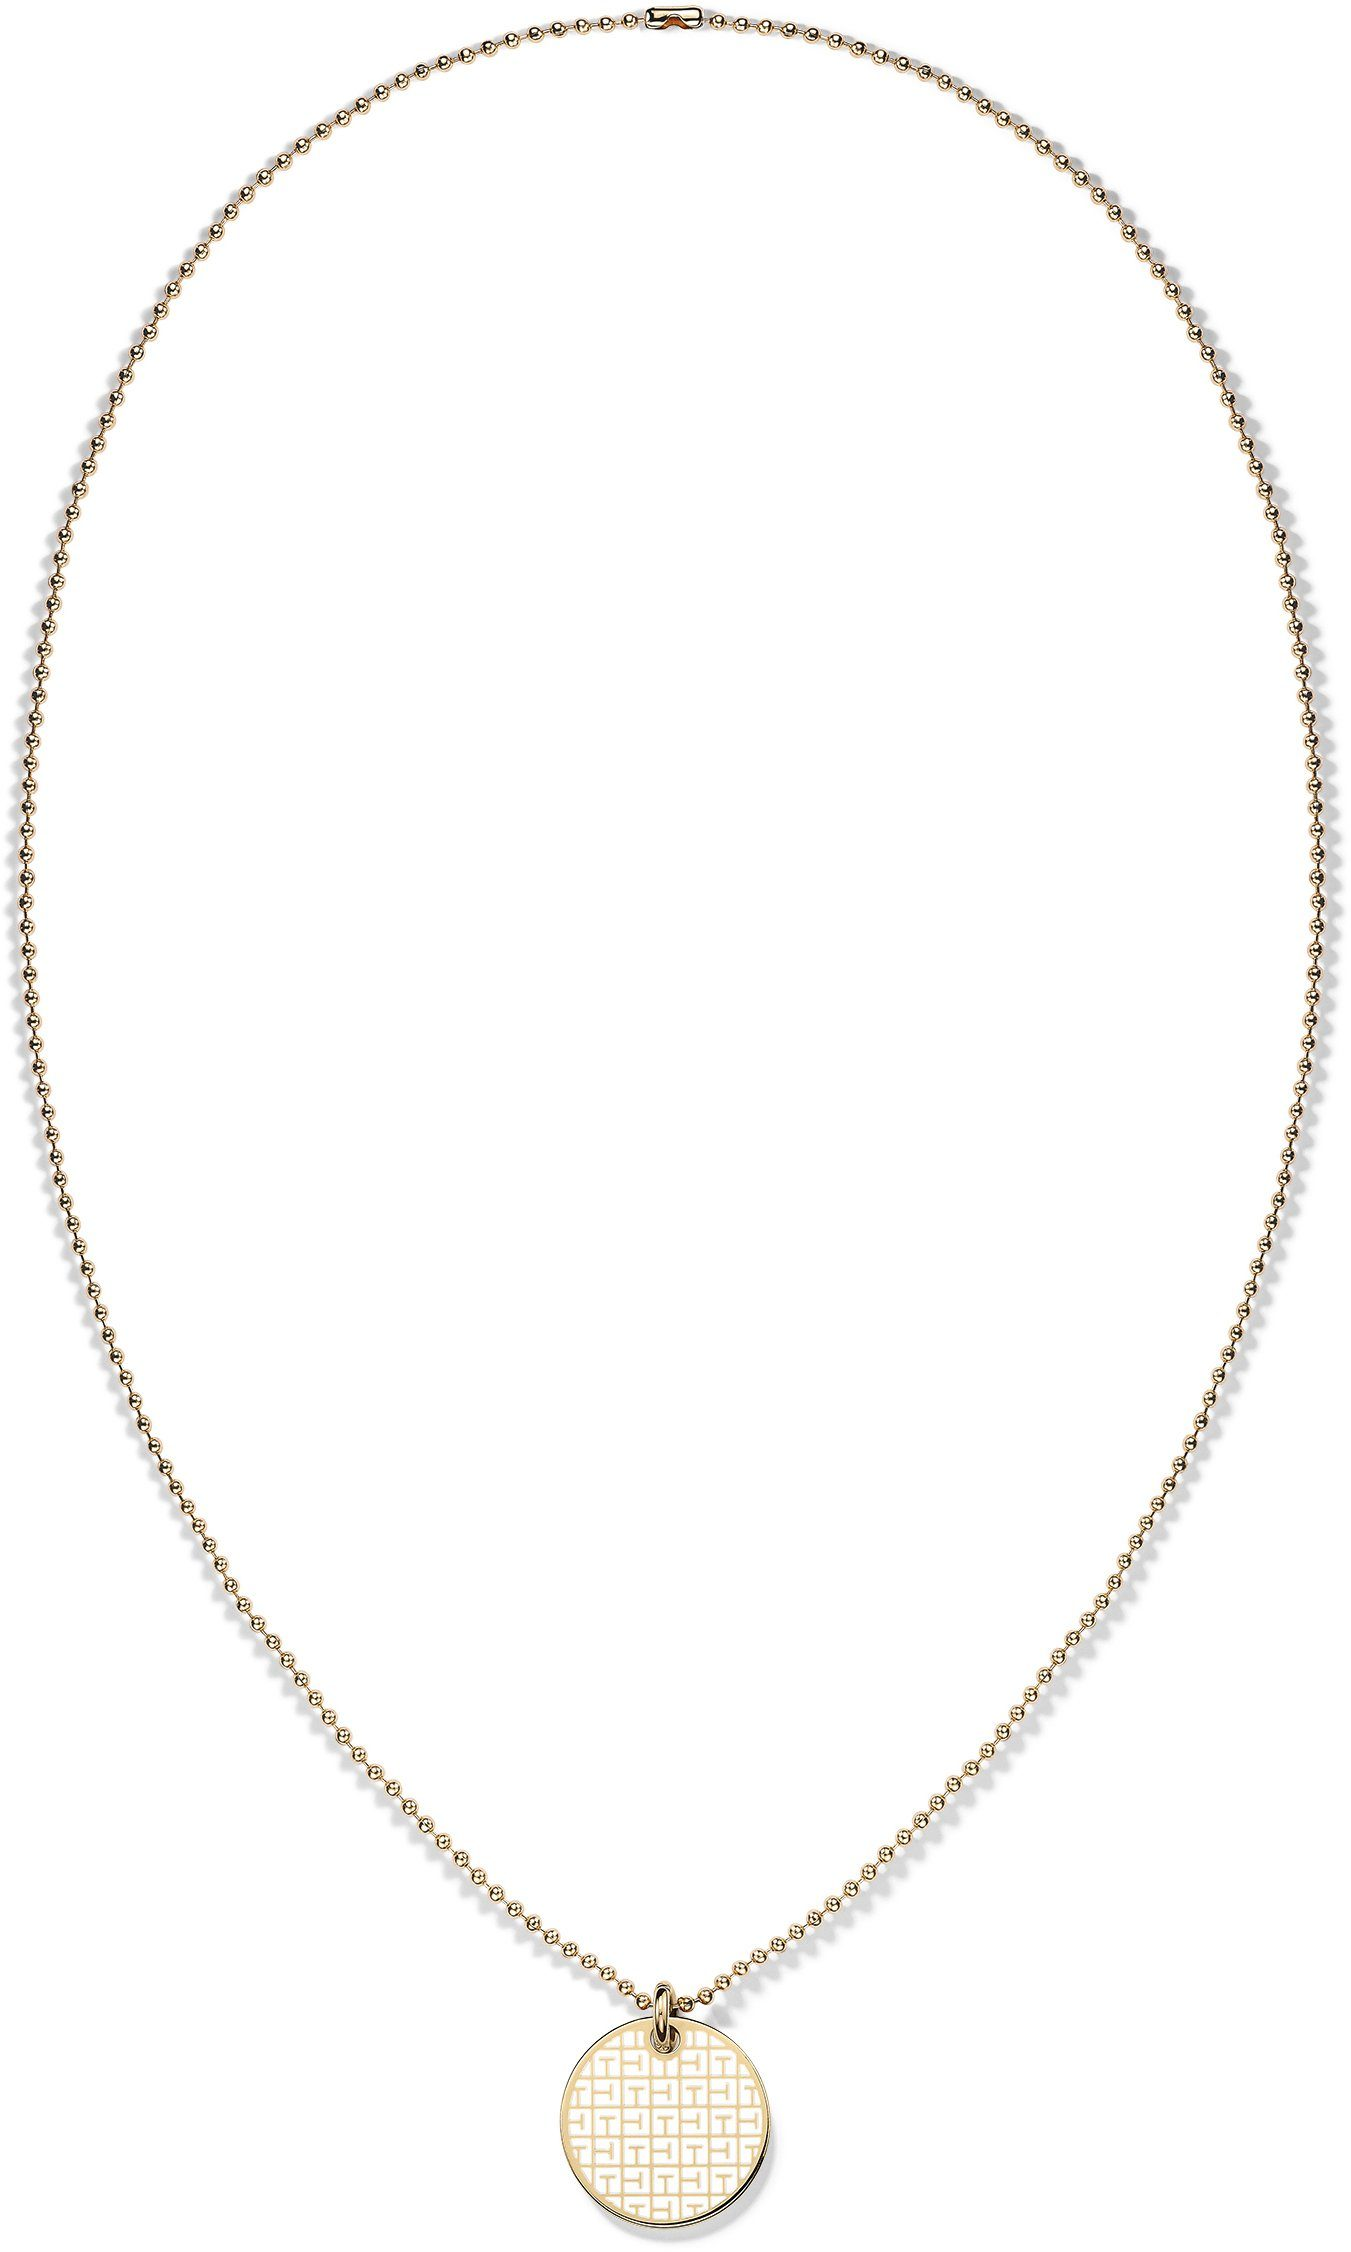 Tommy Hilfiger Kette mit Anhänger, »Classic Signature, 2700802«